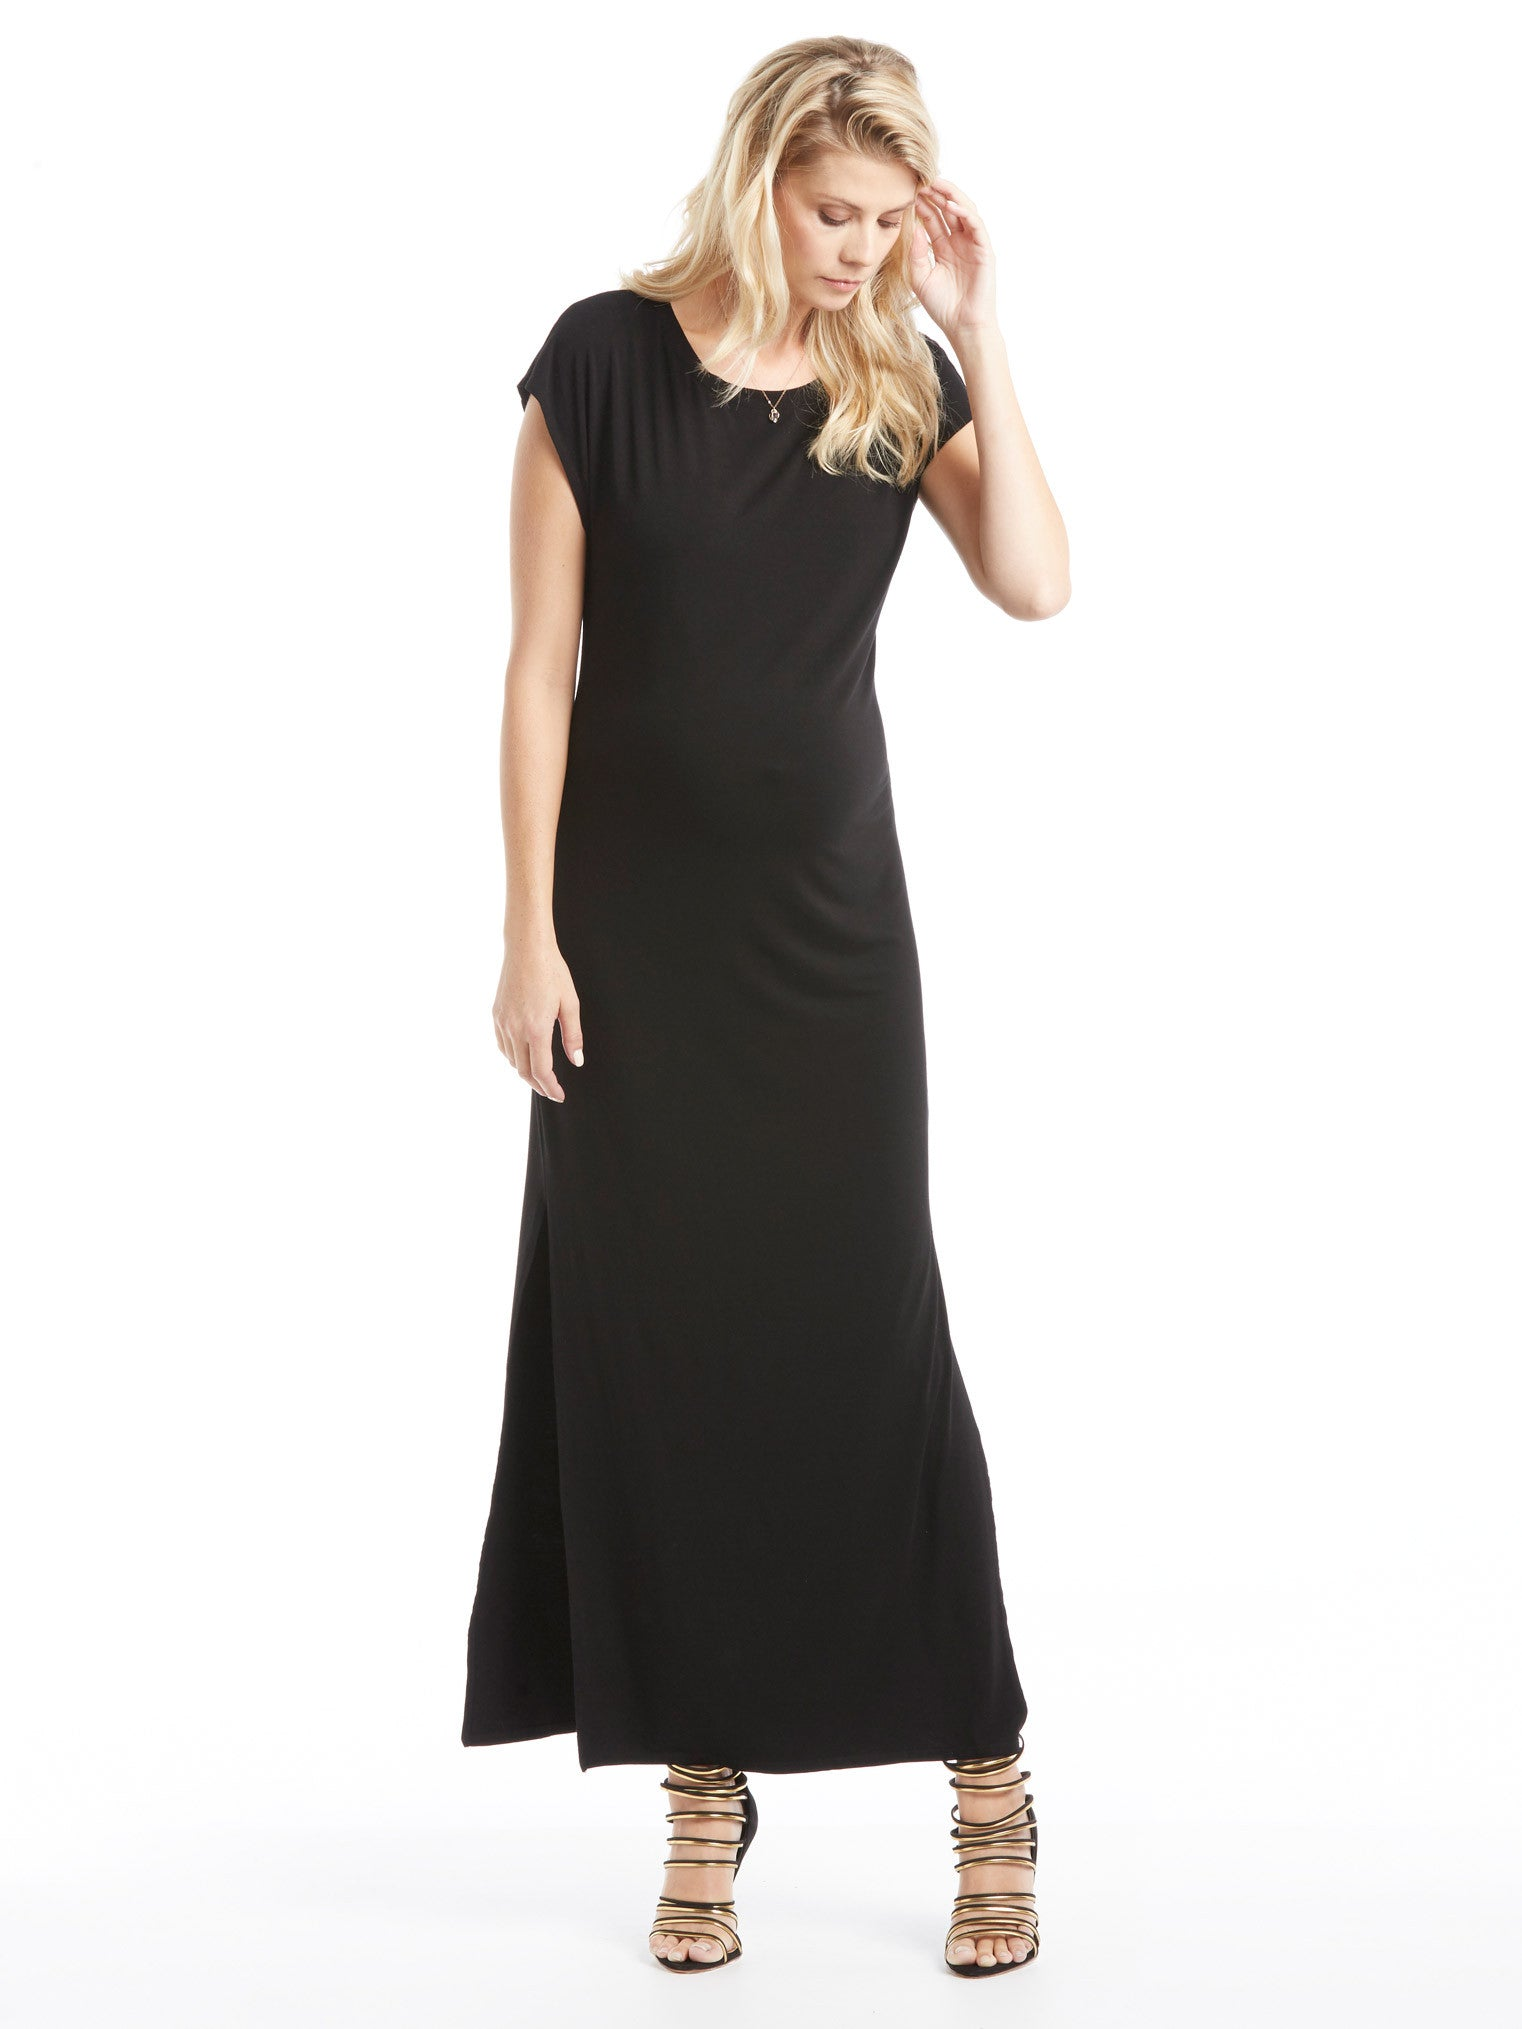 Enza Costa Easy Dress - Black | TILDEN